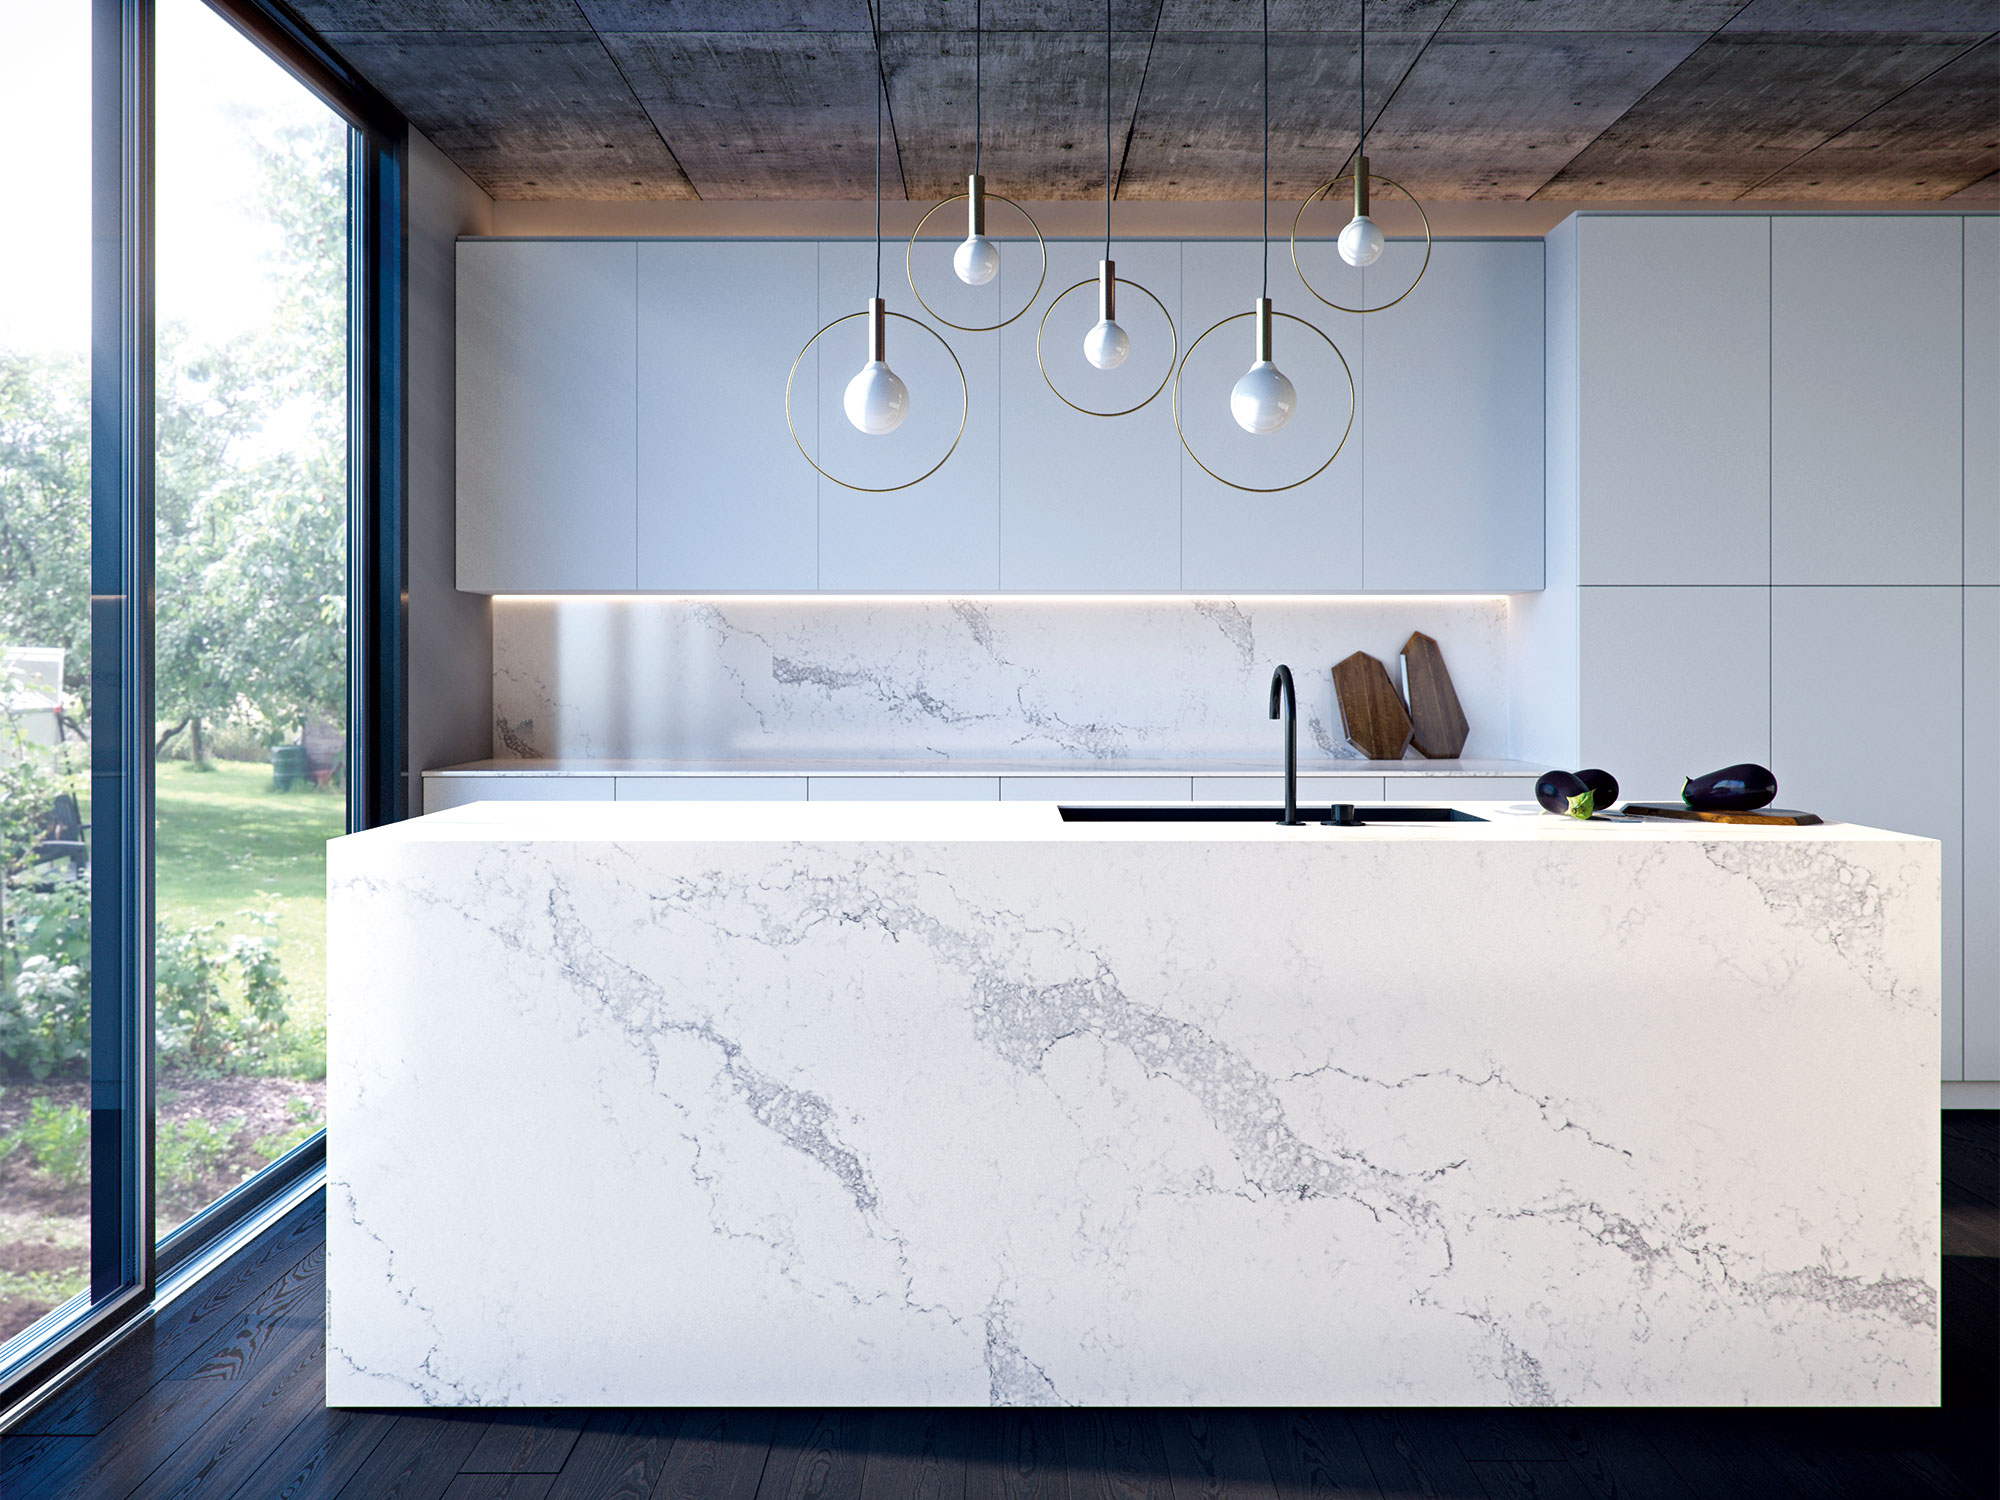 Stone Bench Tops Off Cuts 4 Ways To Nail A Marble Look Kitchen Bench Top Realestate Au